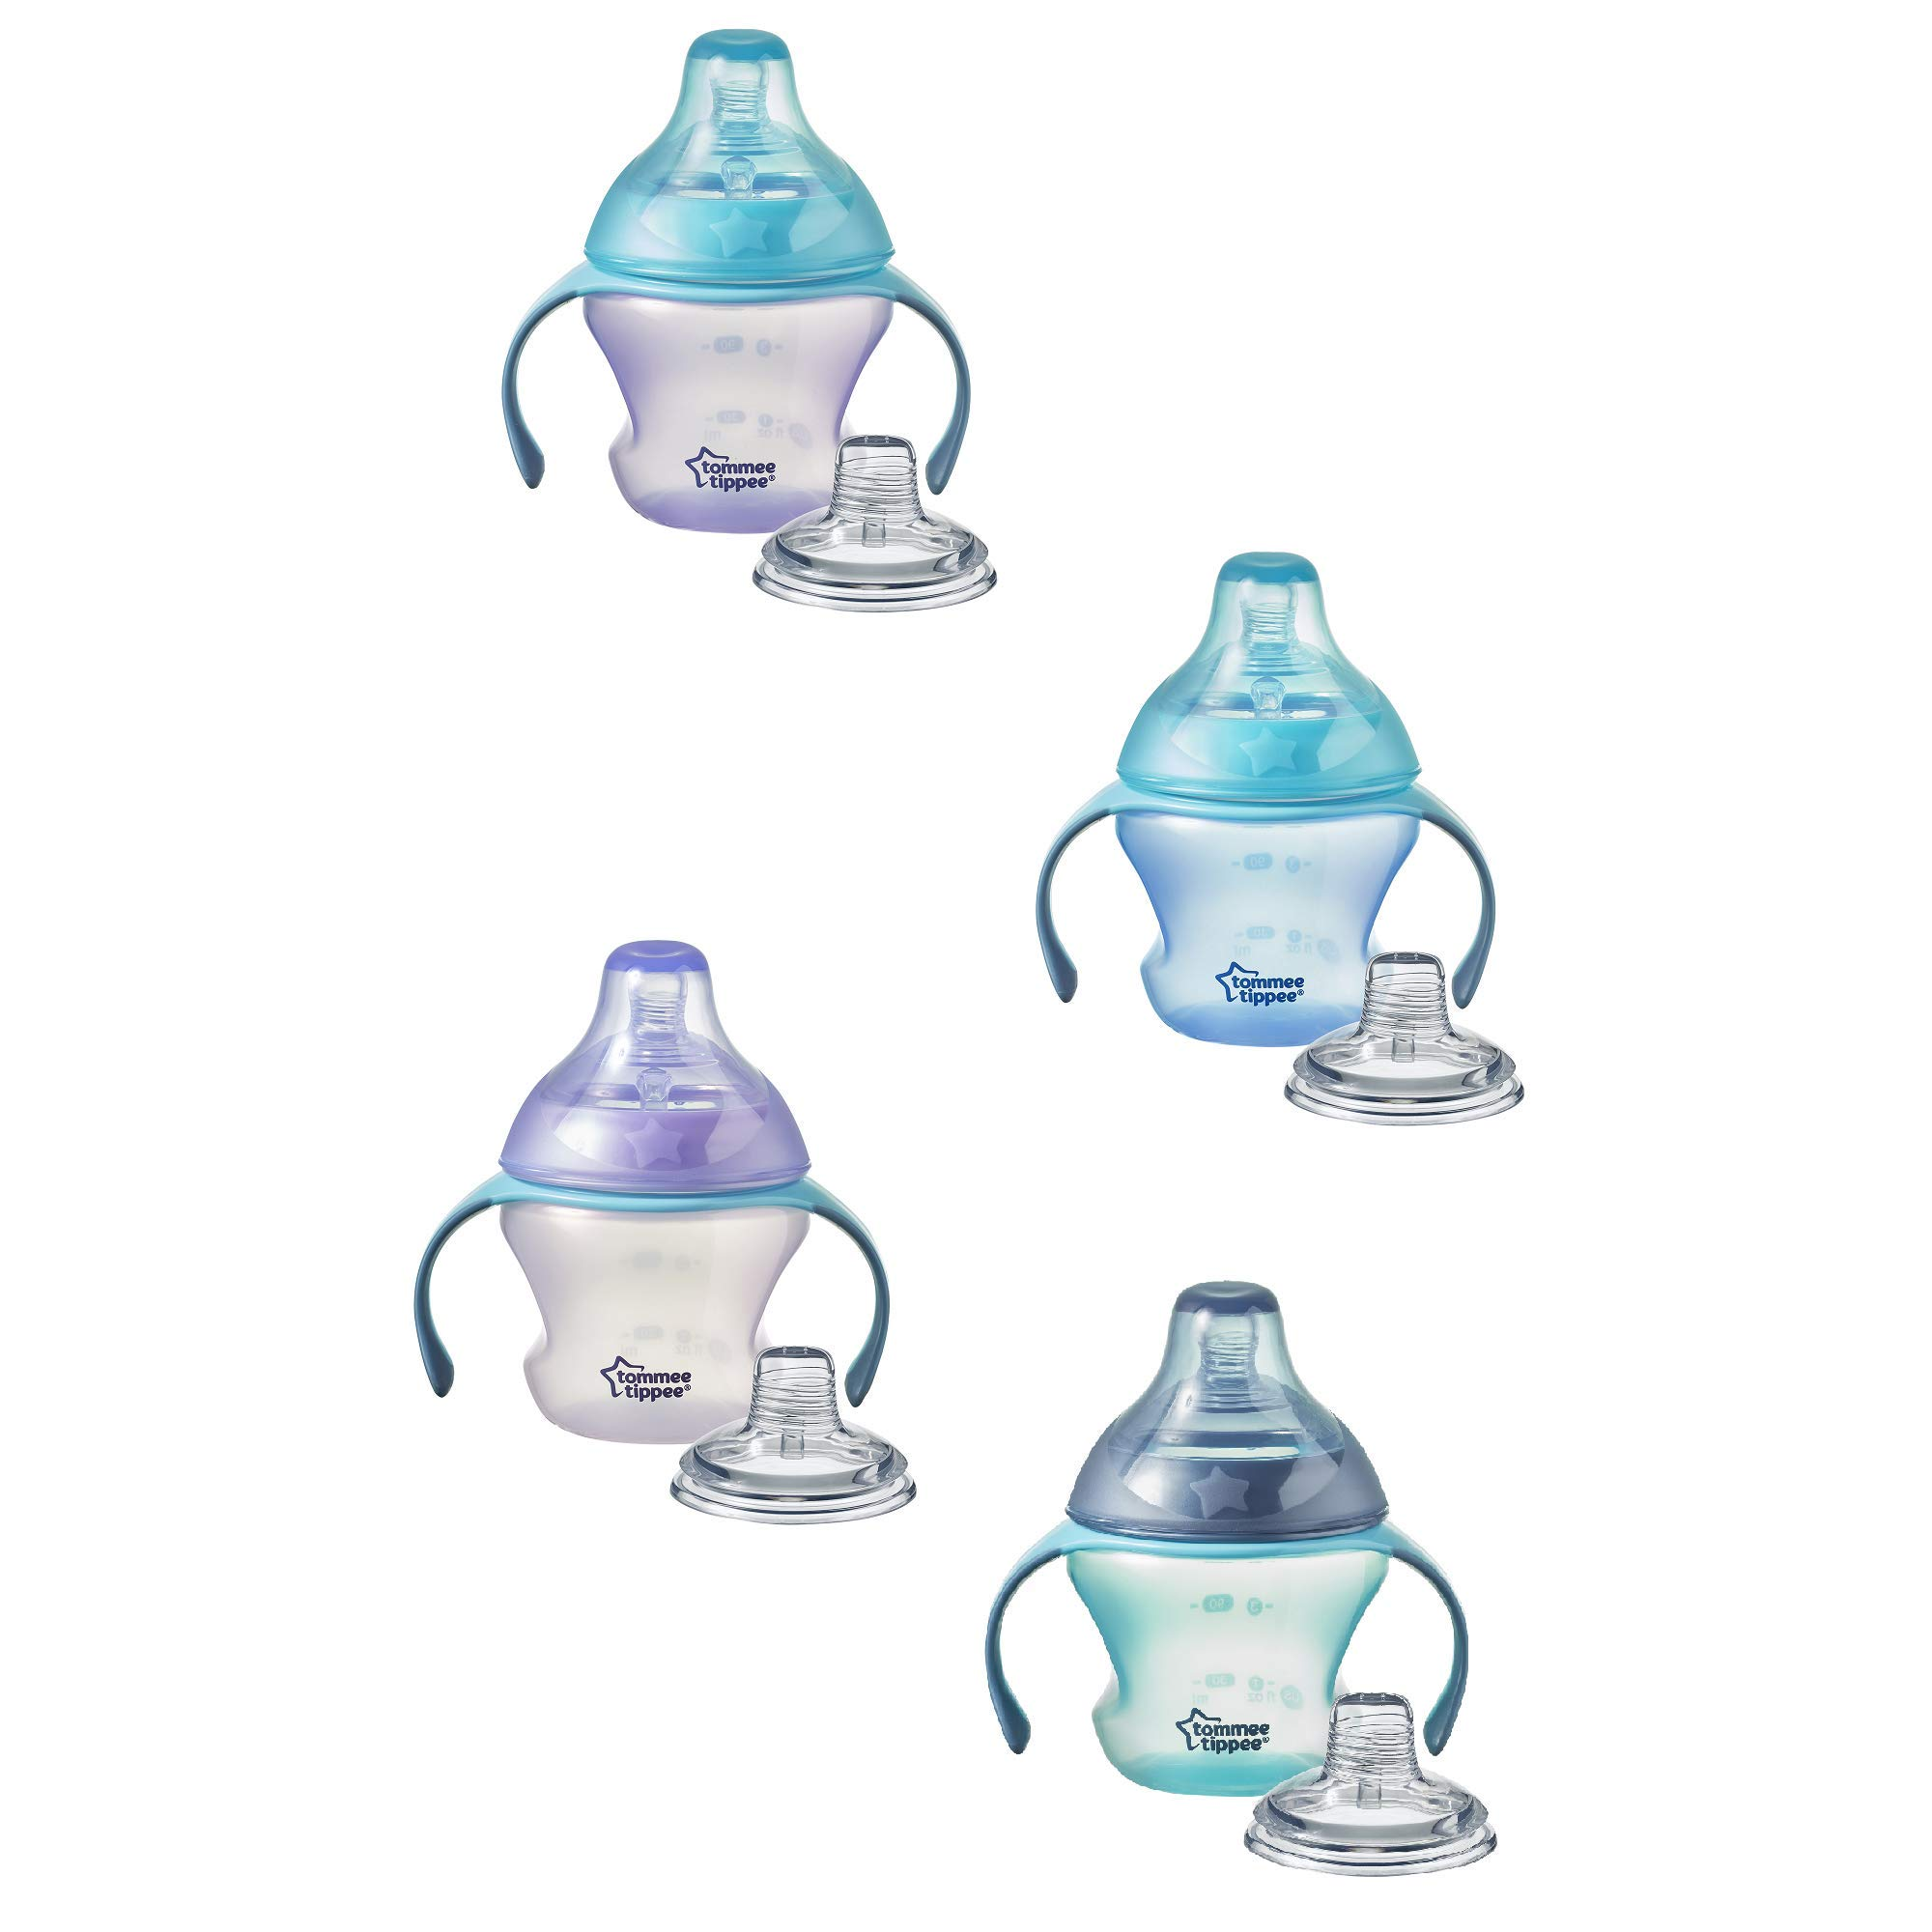 TommeeTippeeFirst Sips Soft Transition Cup, Gentle on Gums, Spill-Proof, Dishwasher Safe, 4+ months, 5 ounces, 1 Count (Colors May Vary)